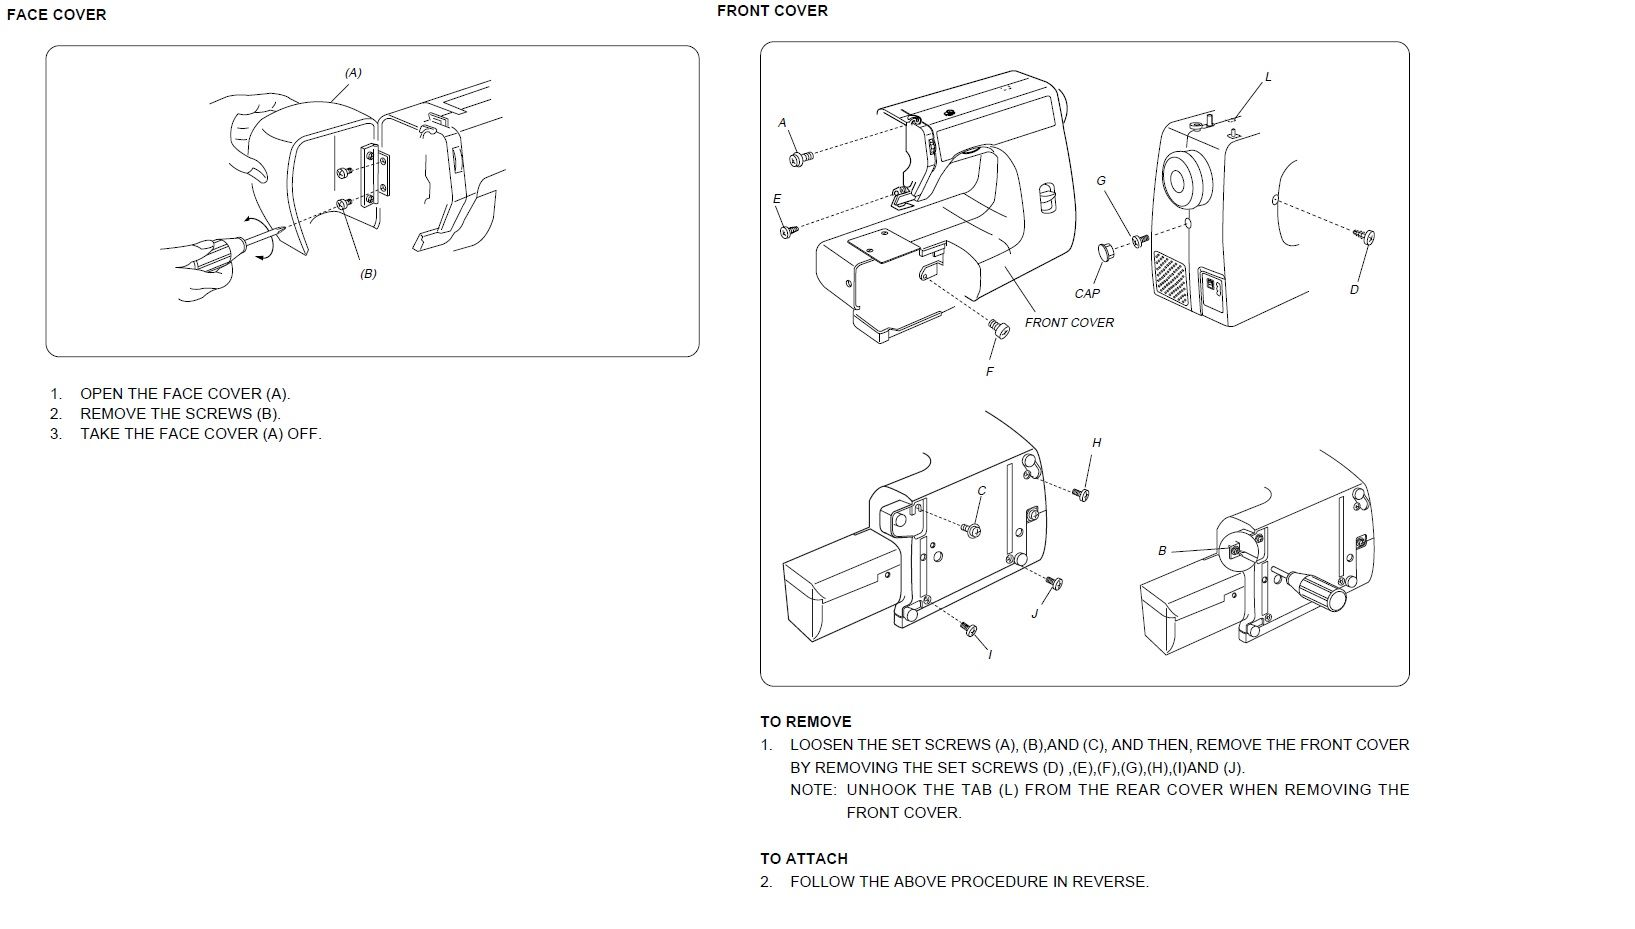 Best Sears Kenmore Sewing Machine Repair Manual Image Collection Parts Diagram Shop For Model 38517824090 At Partsdirect Find